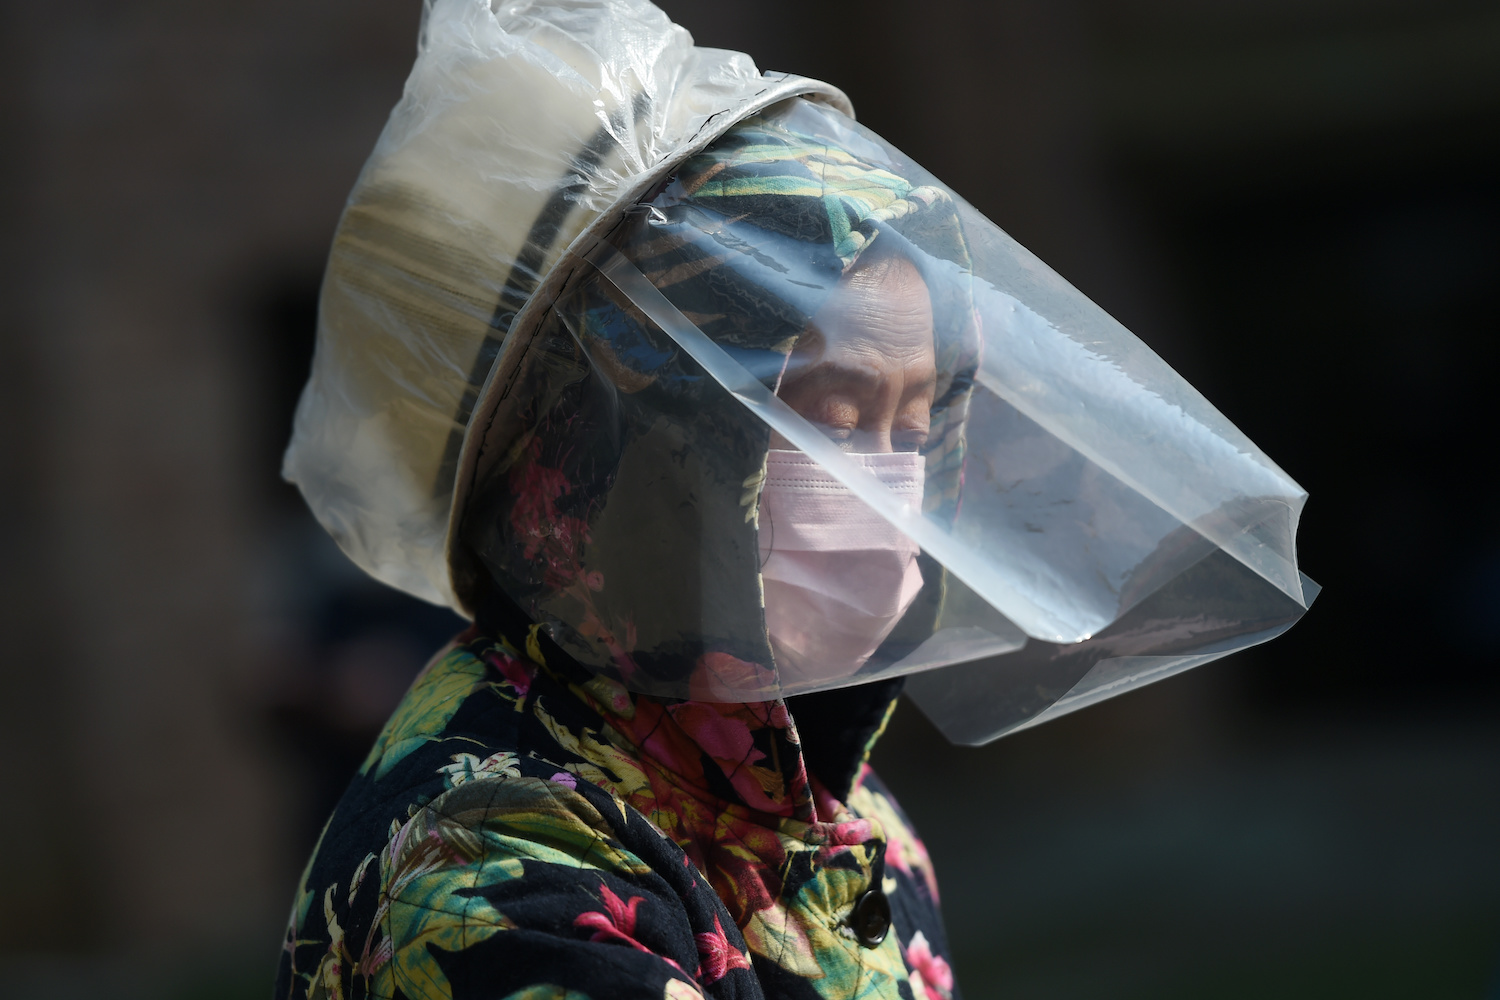 A resident wears a makeshift protective face shield at a residential compound in Wuhan on Friday. (Reuters Photo)